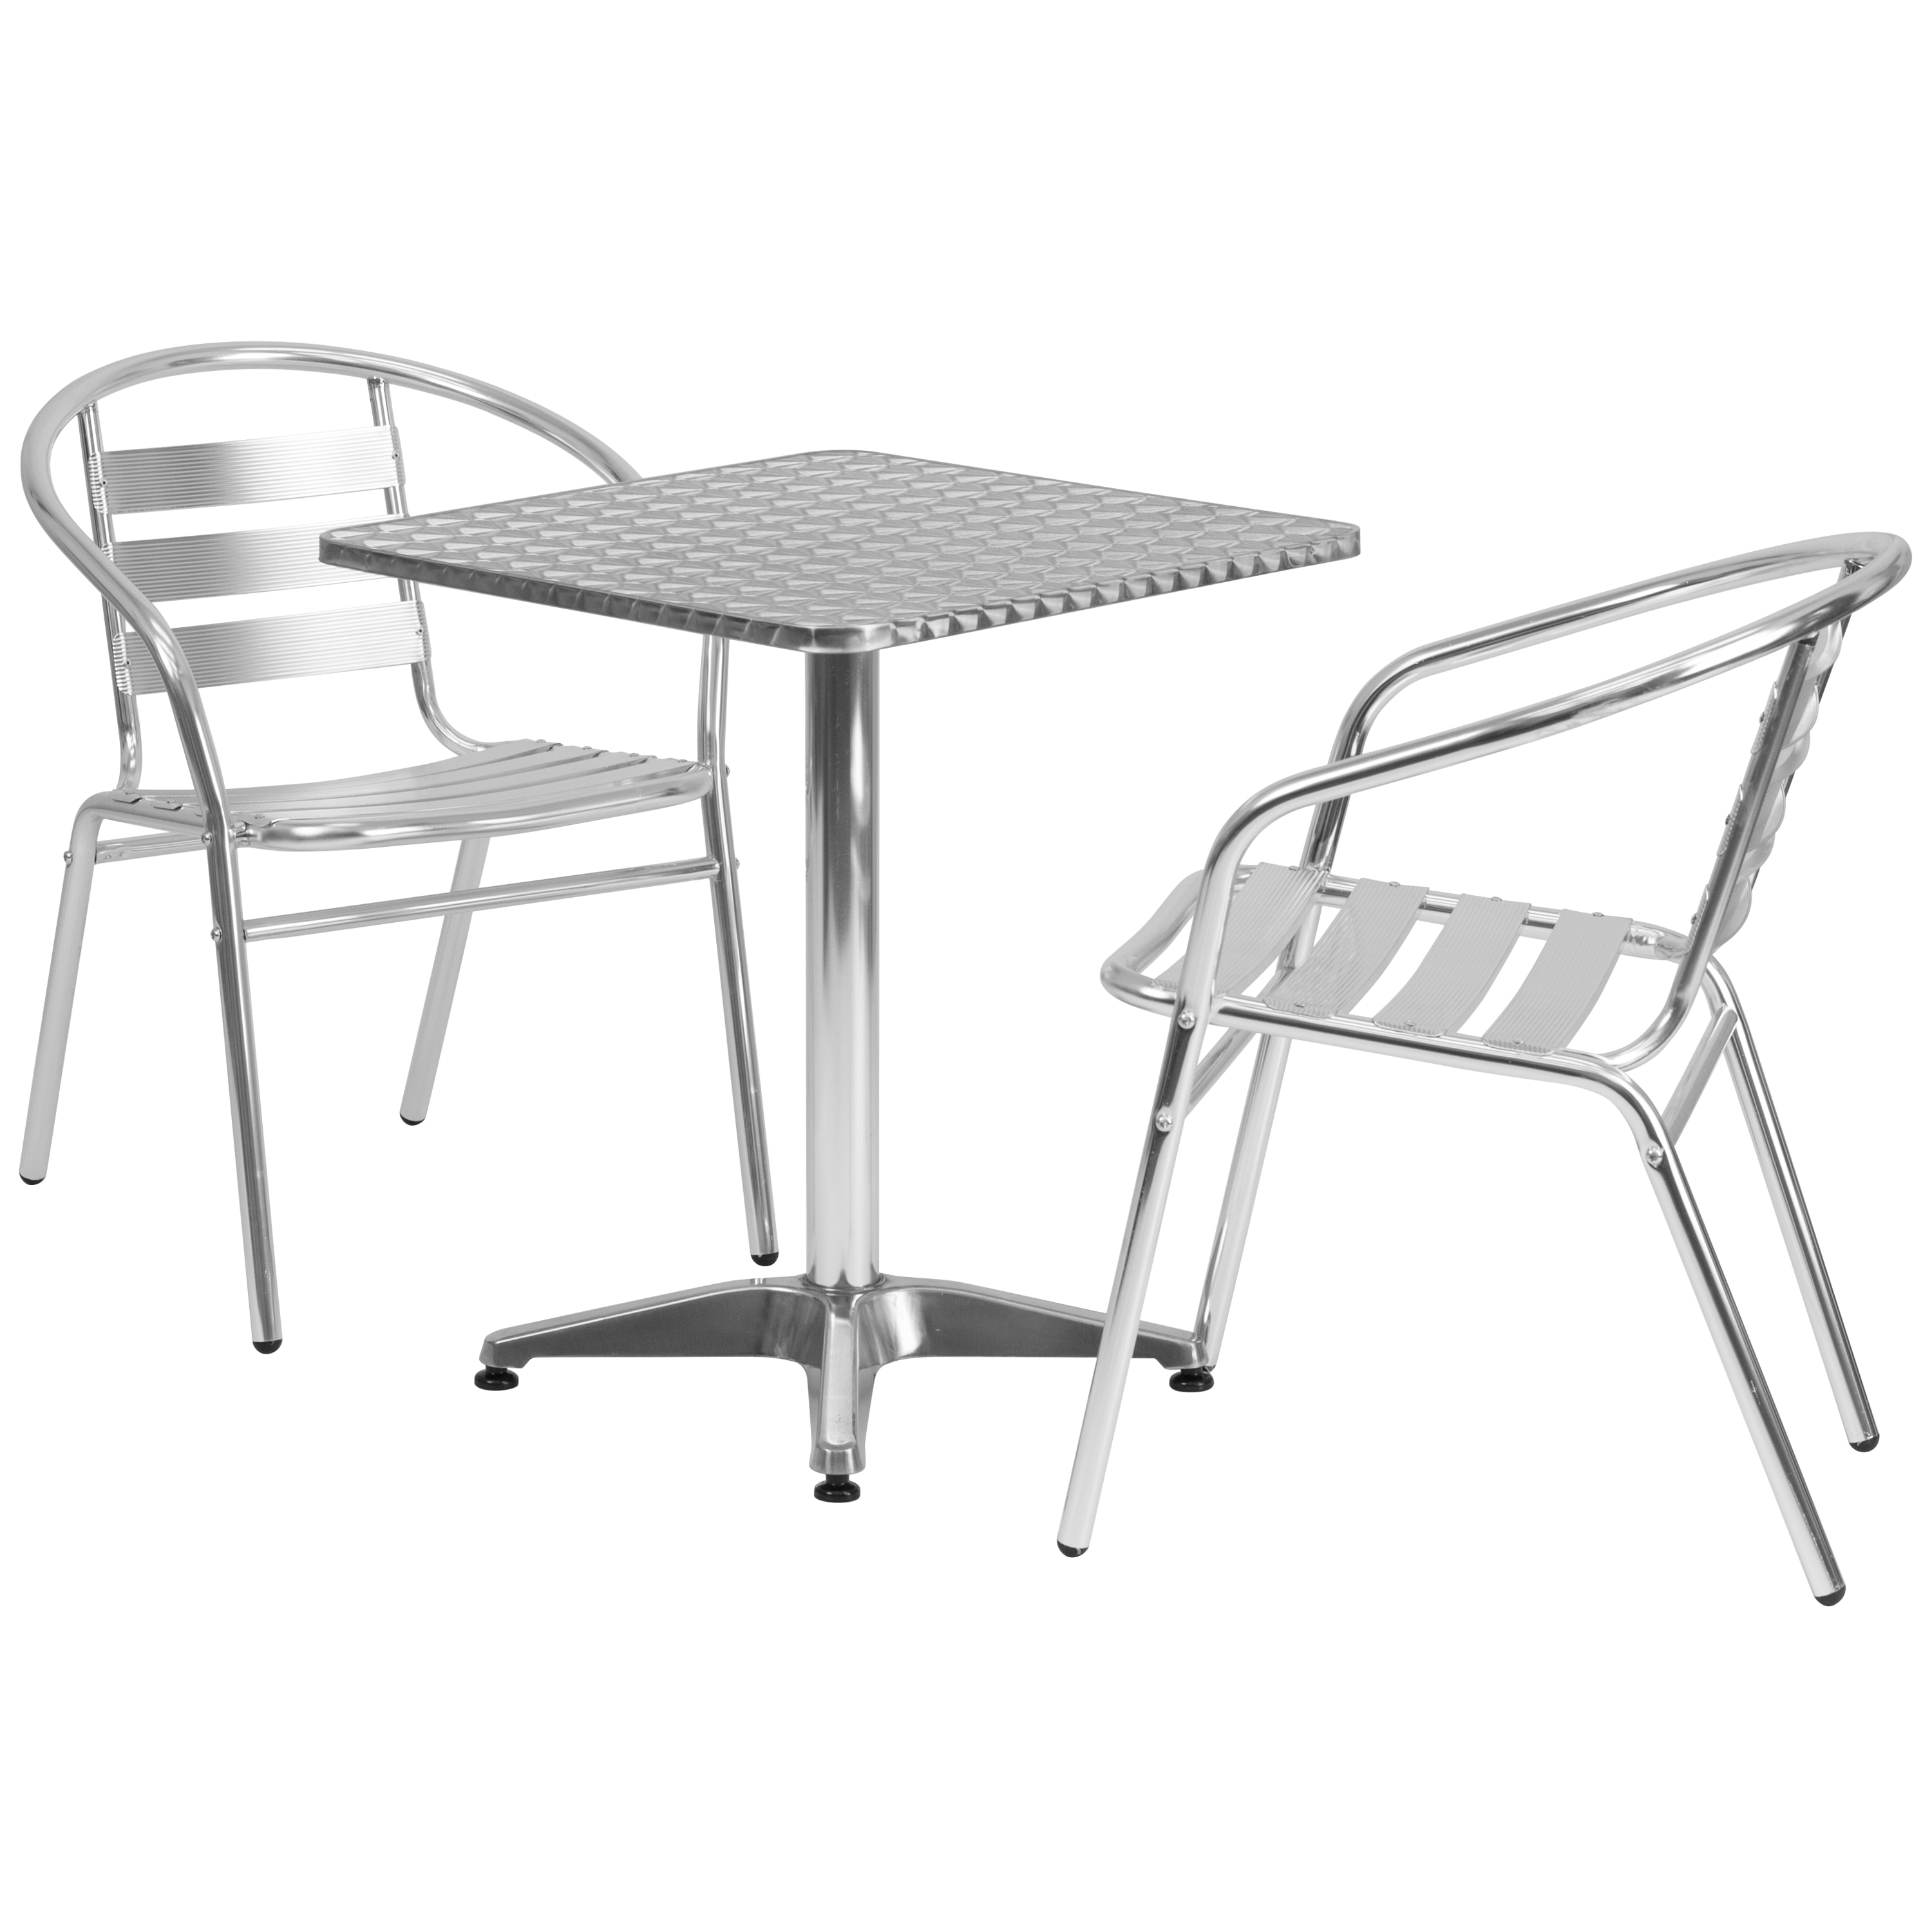 Flash Furniture 23.5-foot Square Aluminum Indoor/ Outdoor Table with 2 Slat Back Chairs